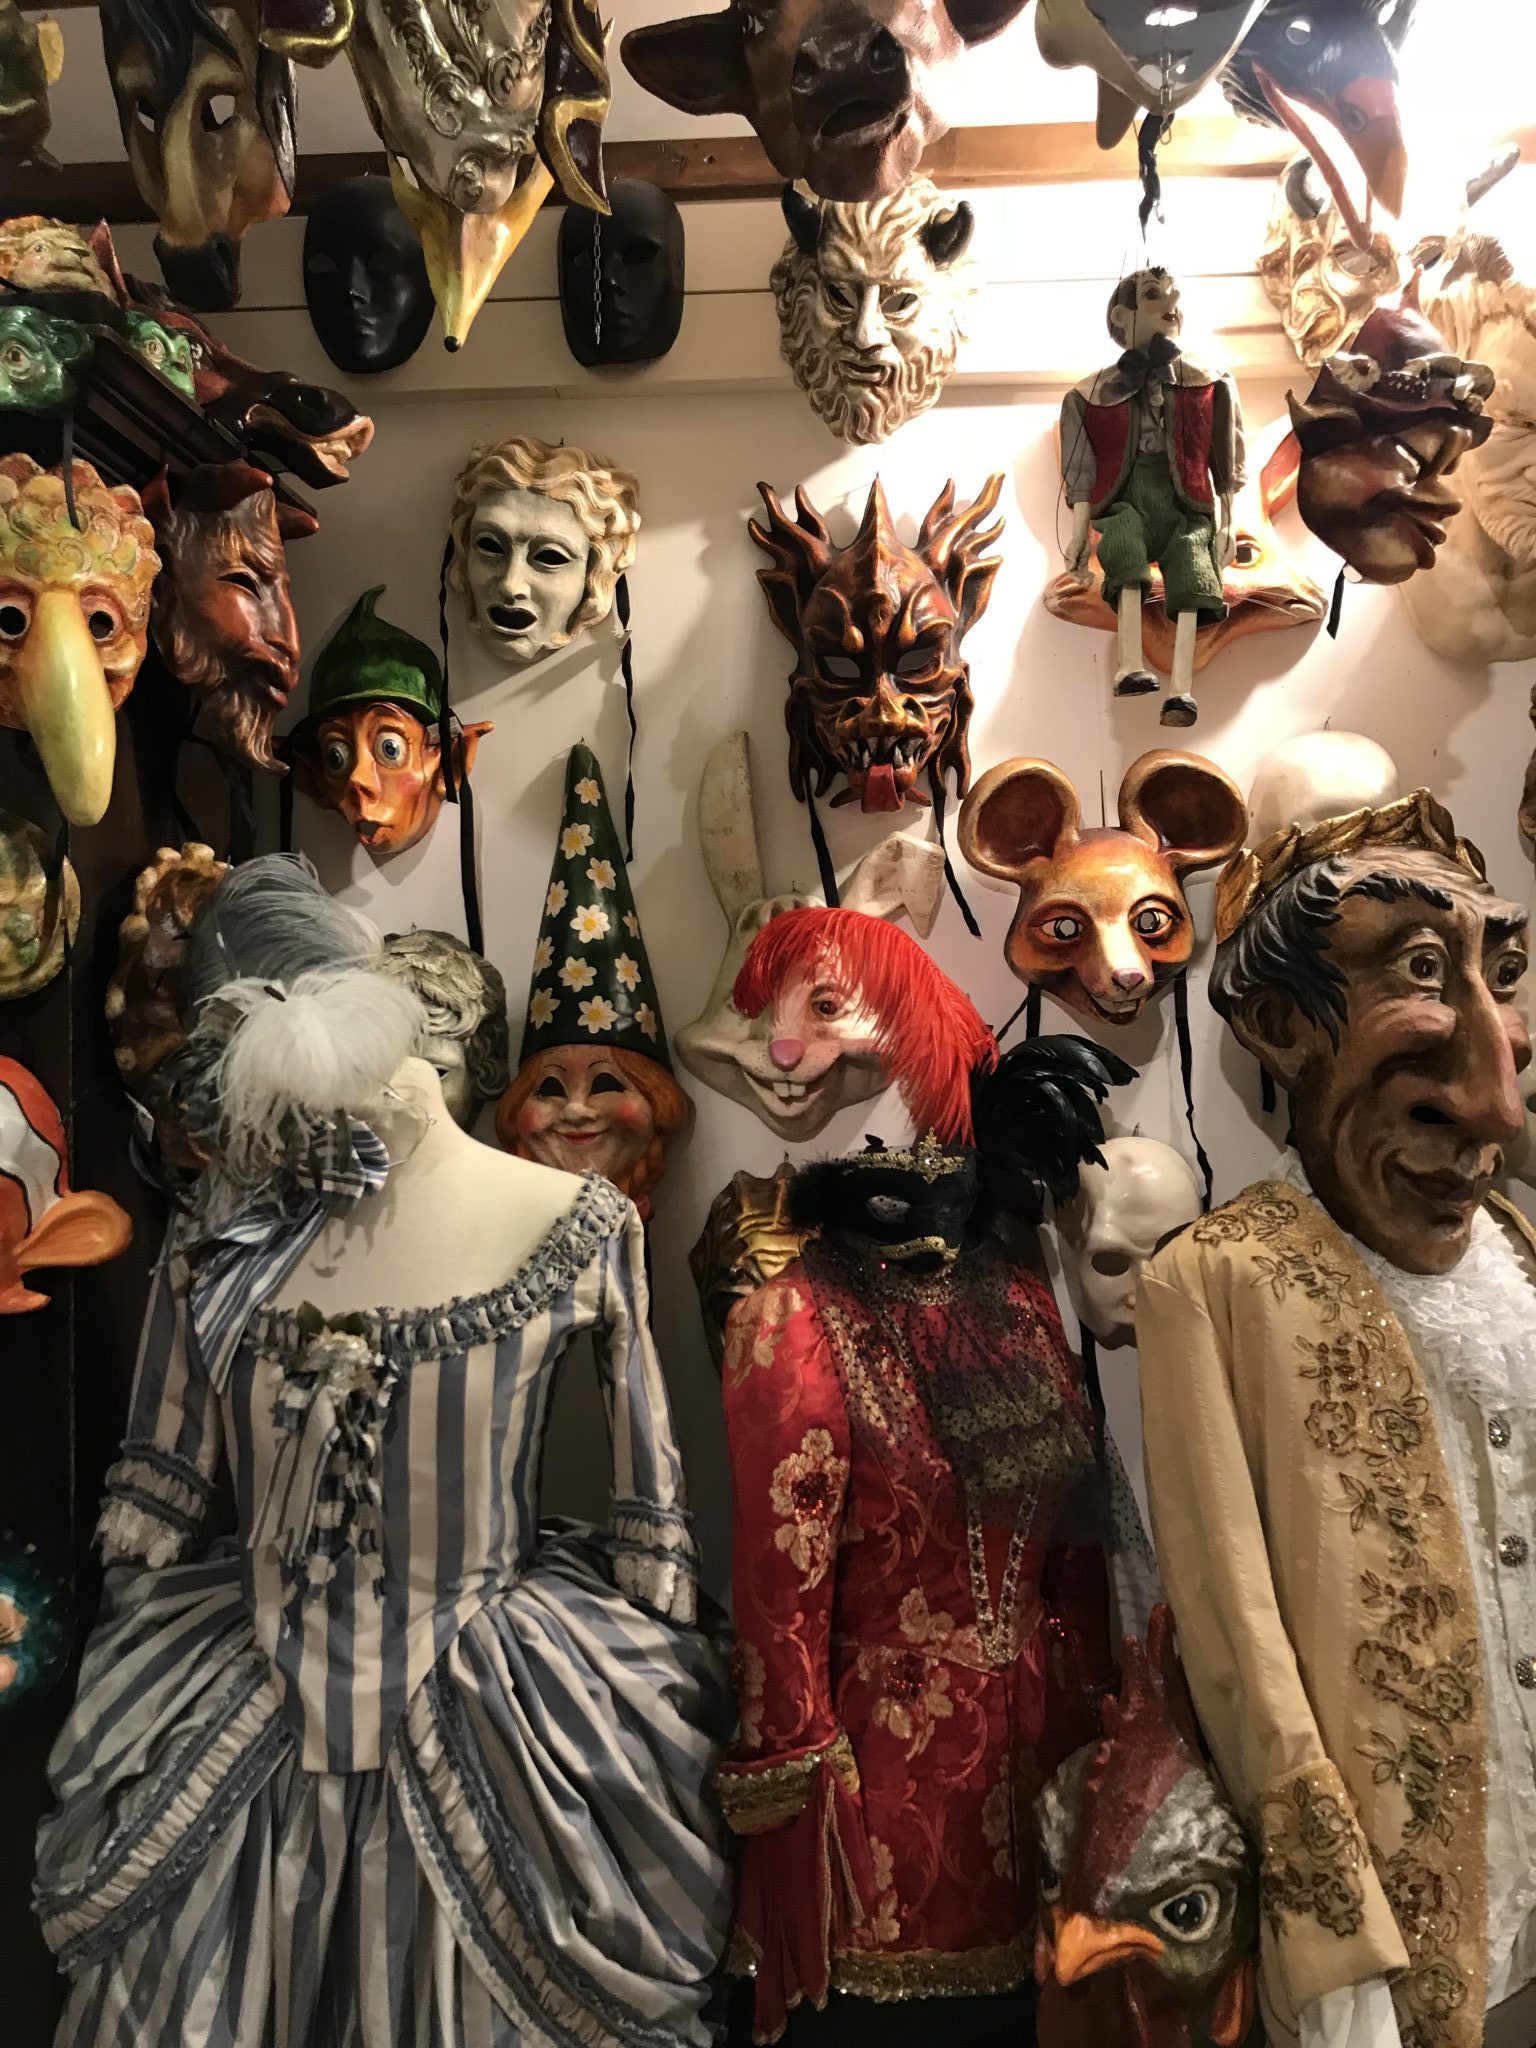 Masks and Venetian costumes at Il Cannavacio. Photo by Misty Foster.